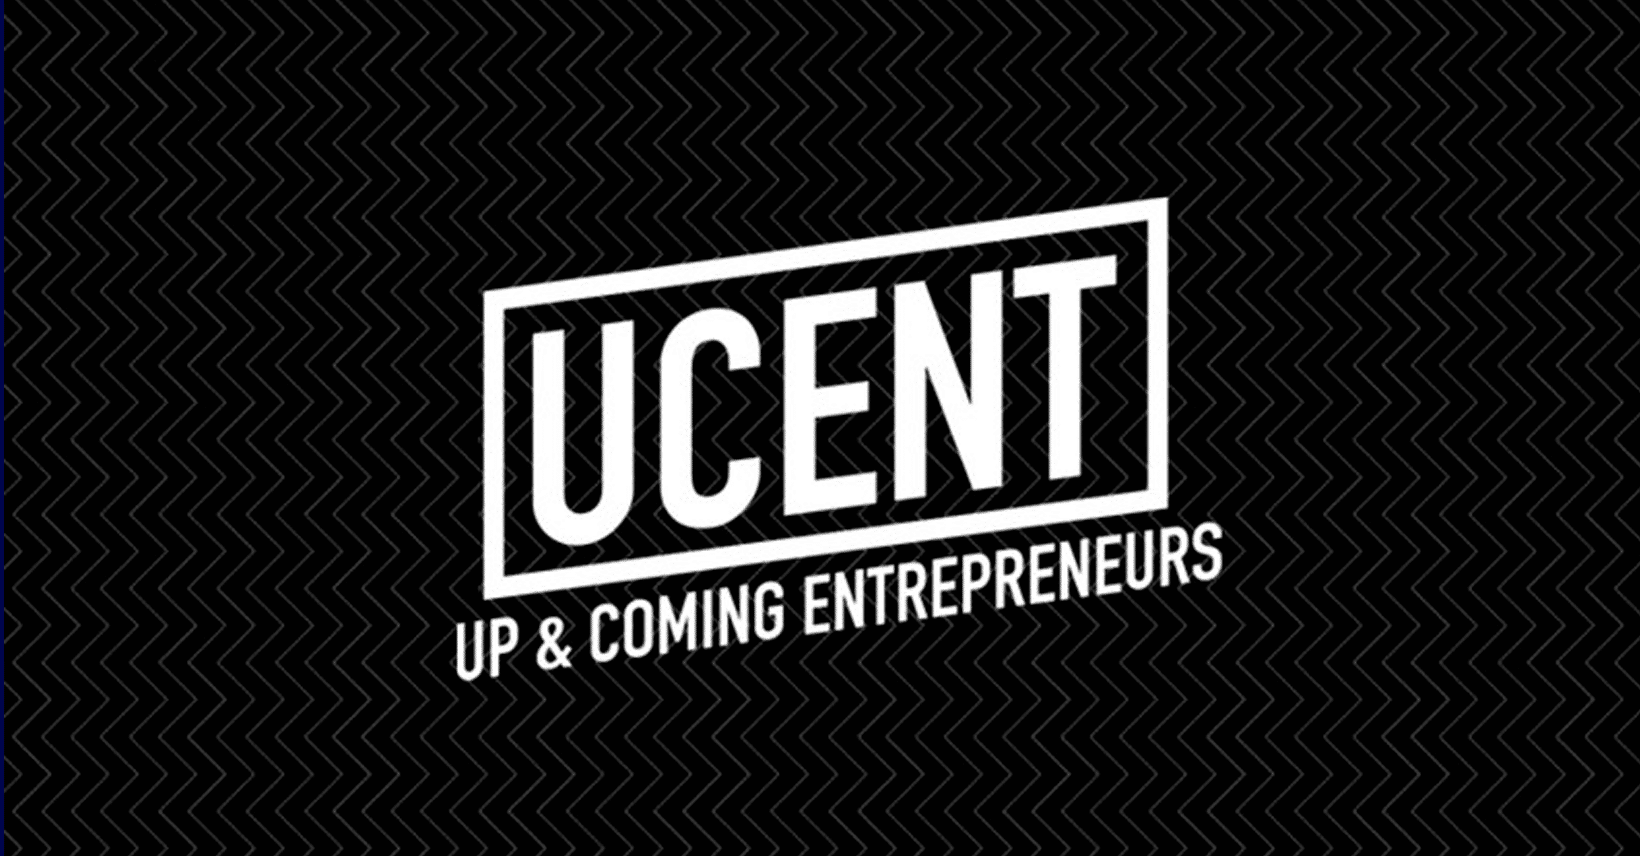 UCENT – Up & Coming Entrepreneurs